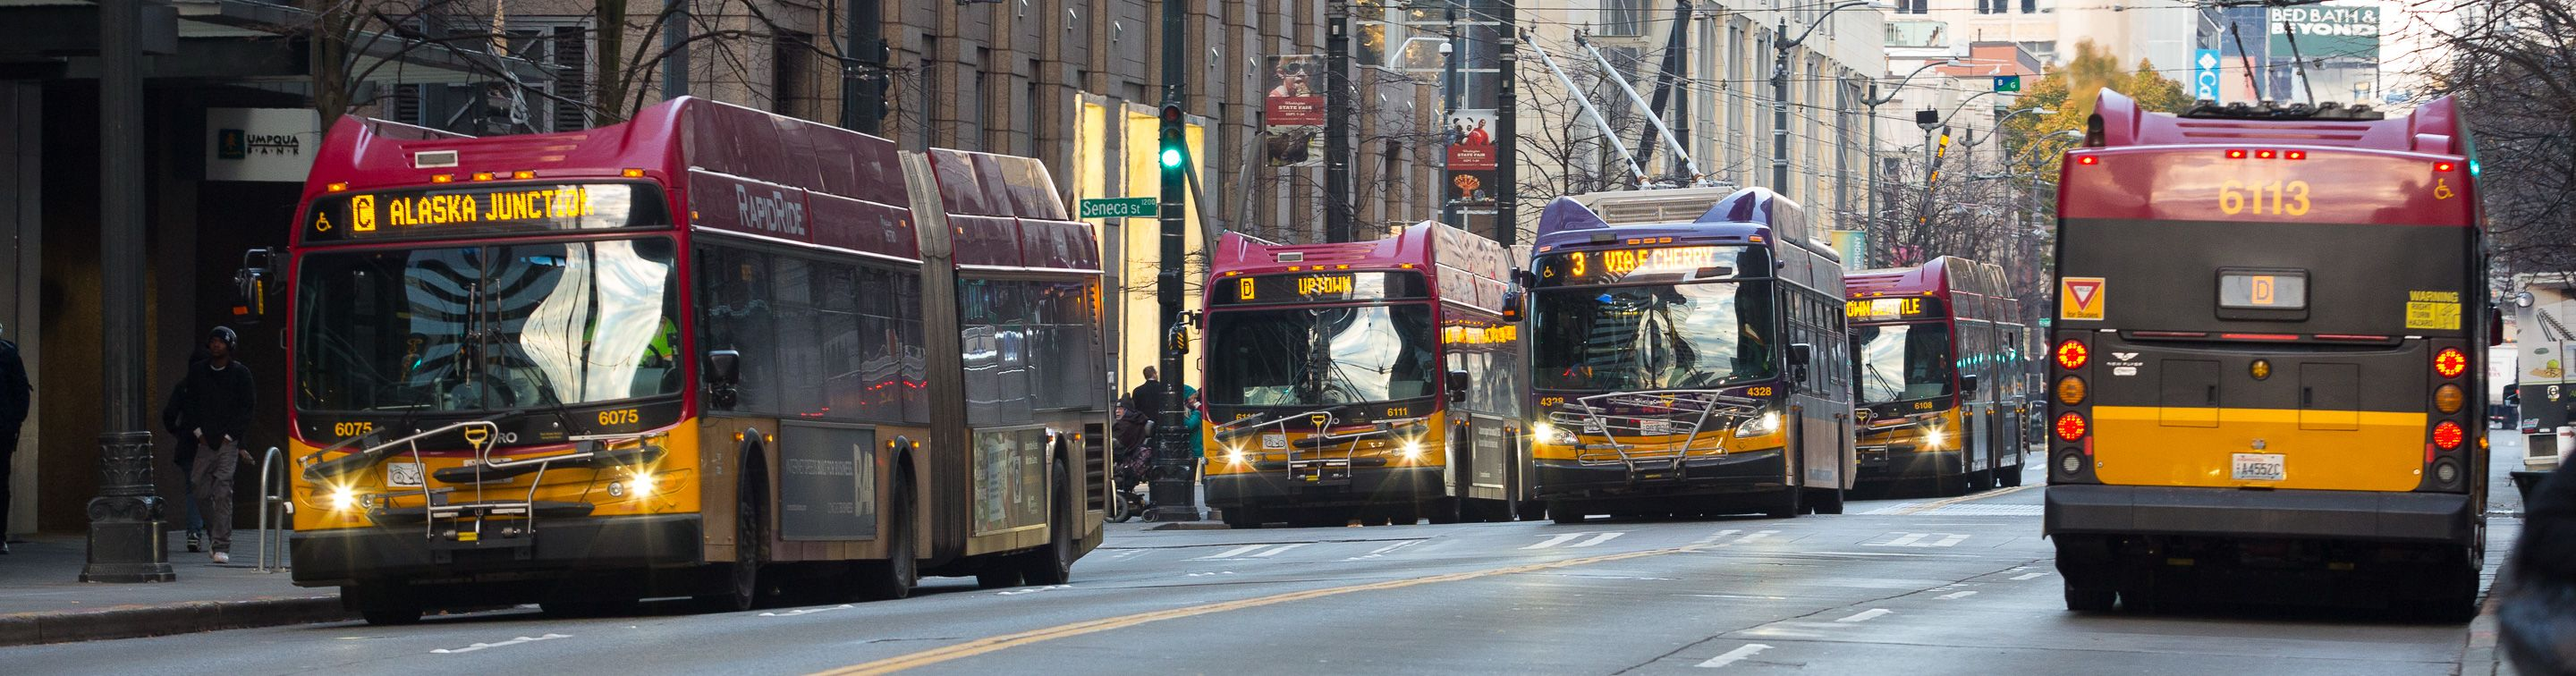 King County Metro named 'best' large transit system by APTA